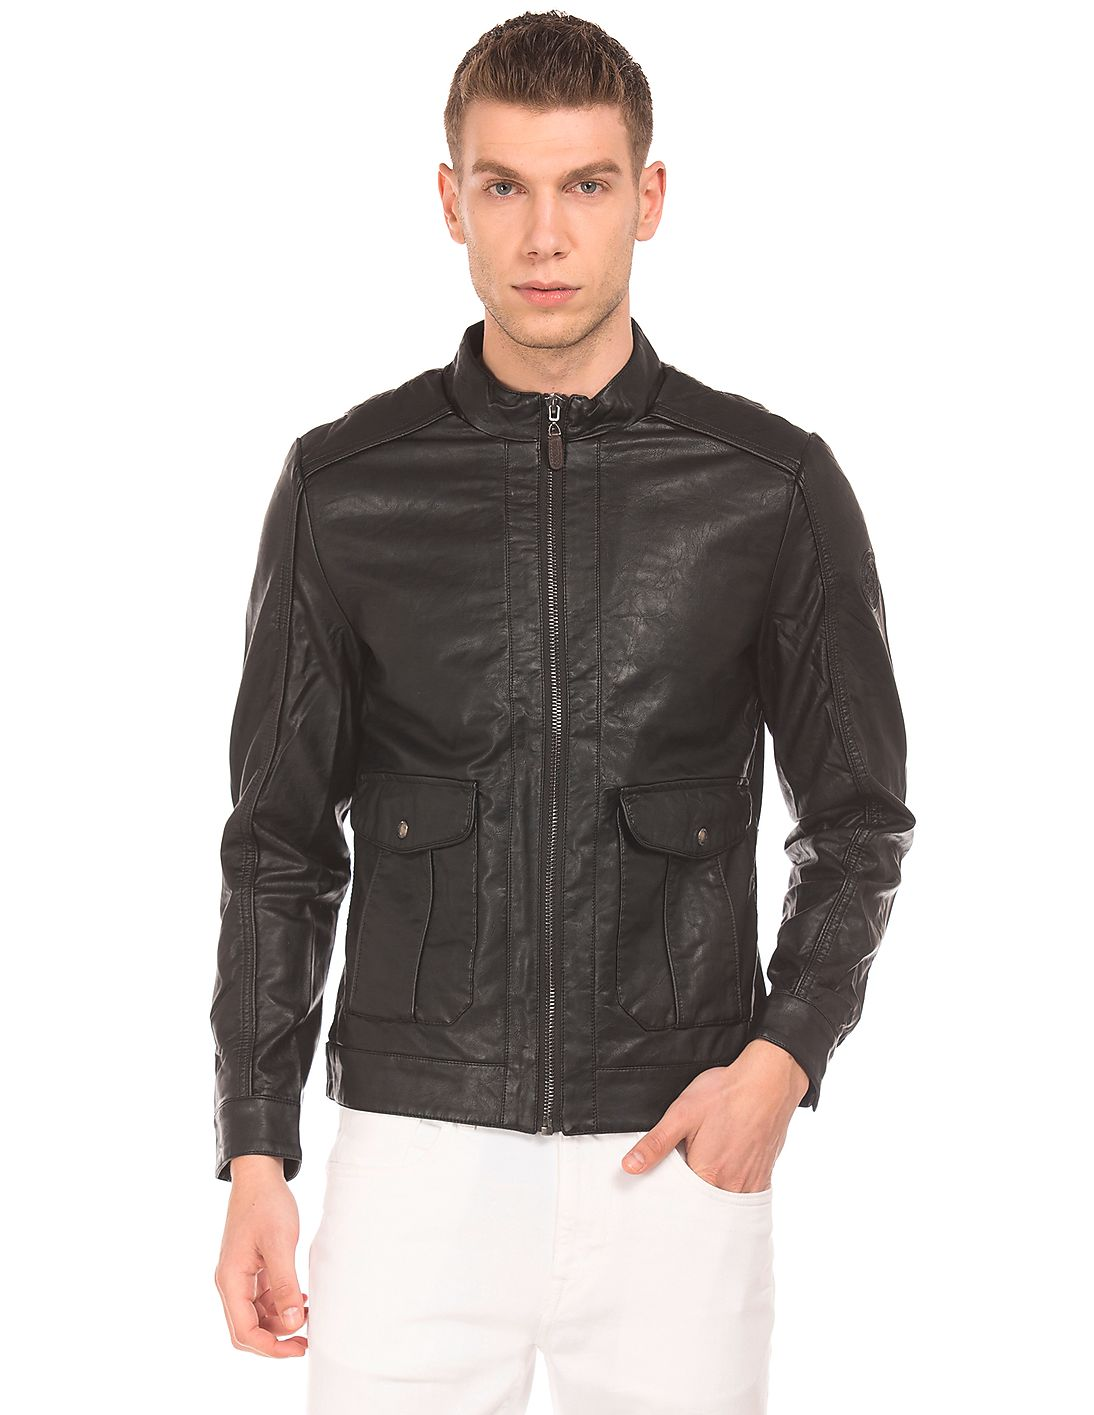 Flying Machine & U.S.Polo Assn Jackets at Flat 80% off